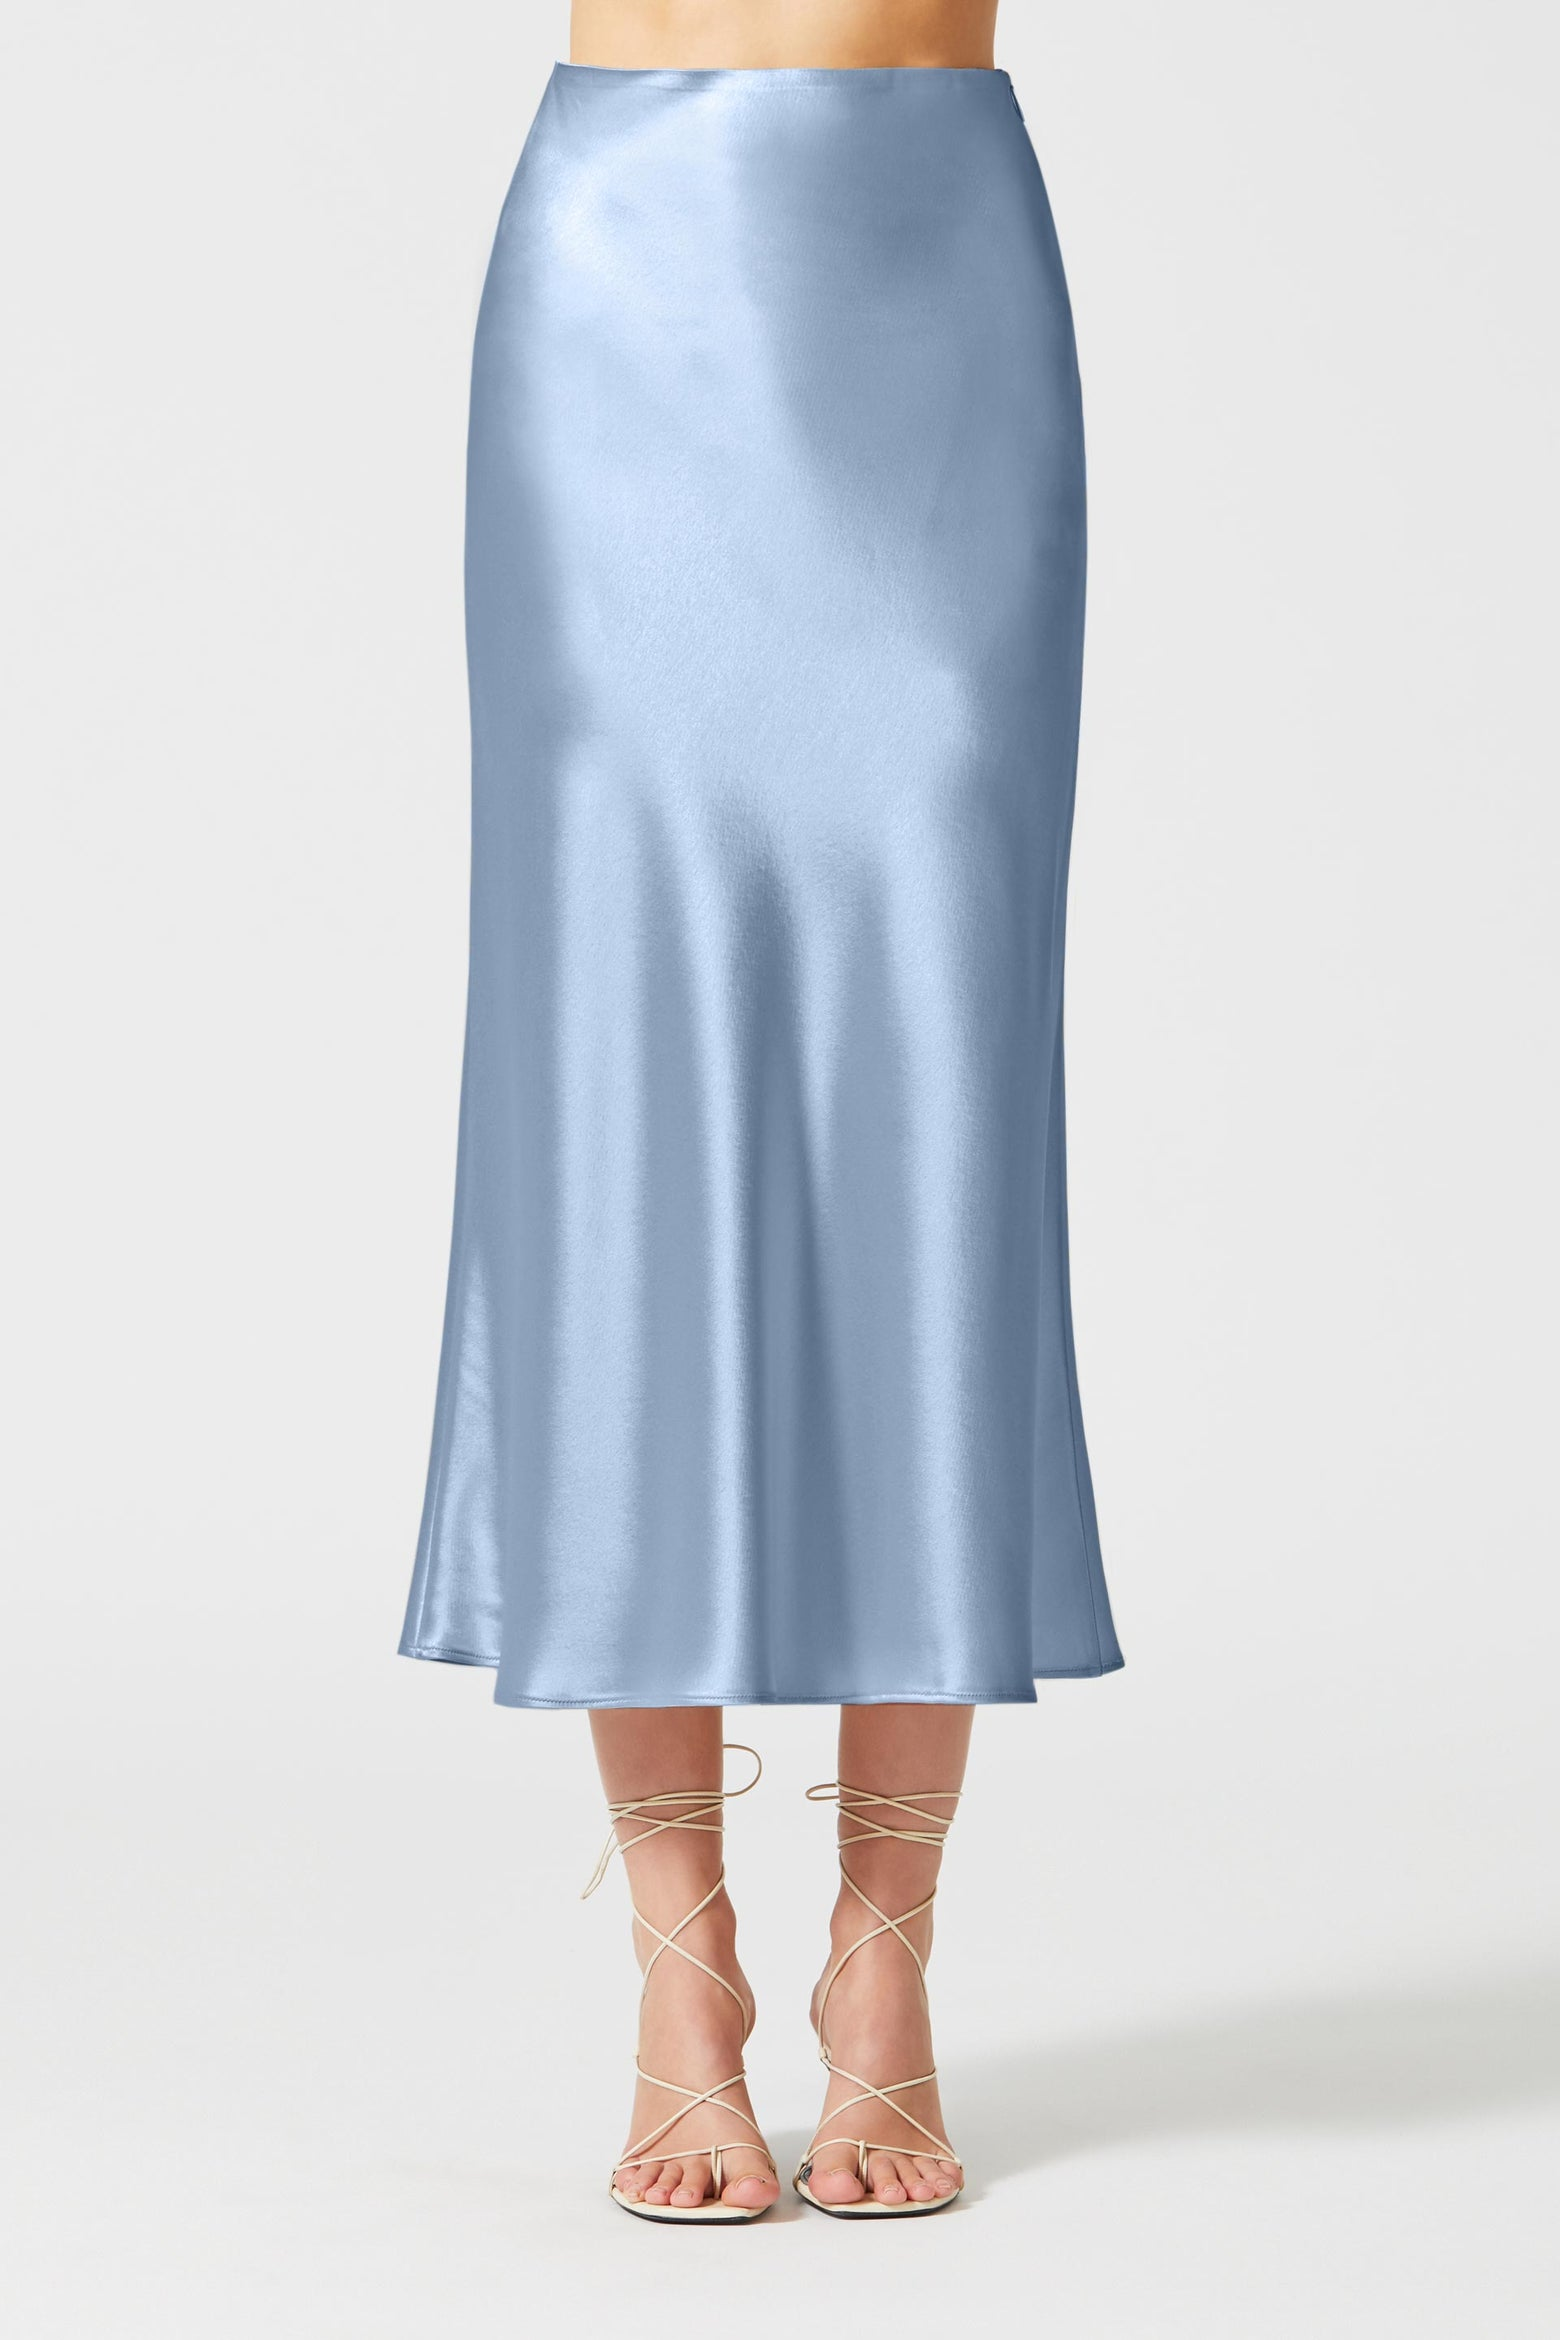 Satin Valletta Skirt - Silver Blue